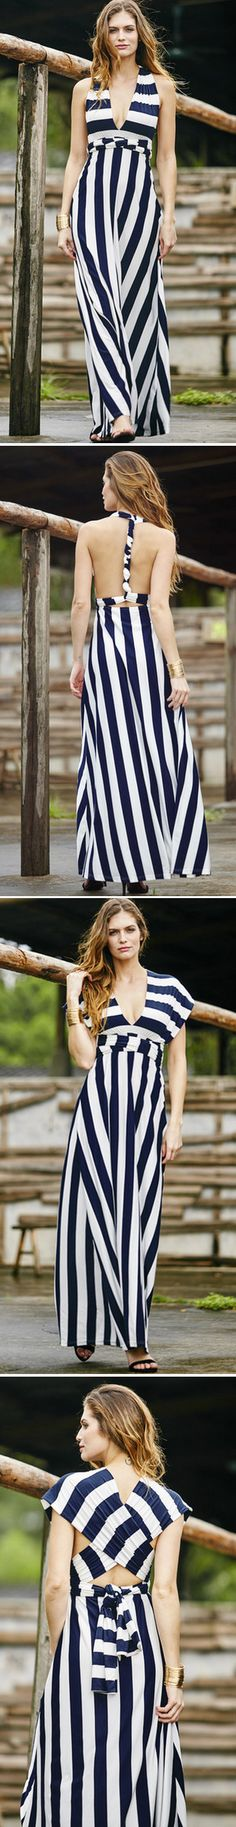 love the versatility of this striped maxi dress. So many different ways to wear it!